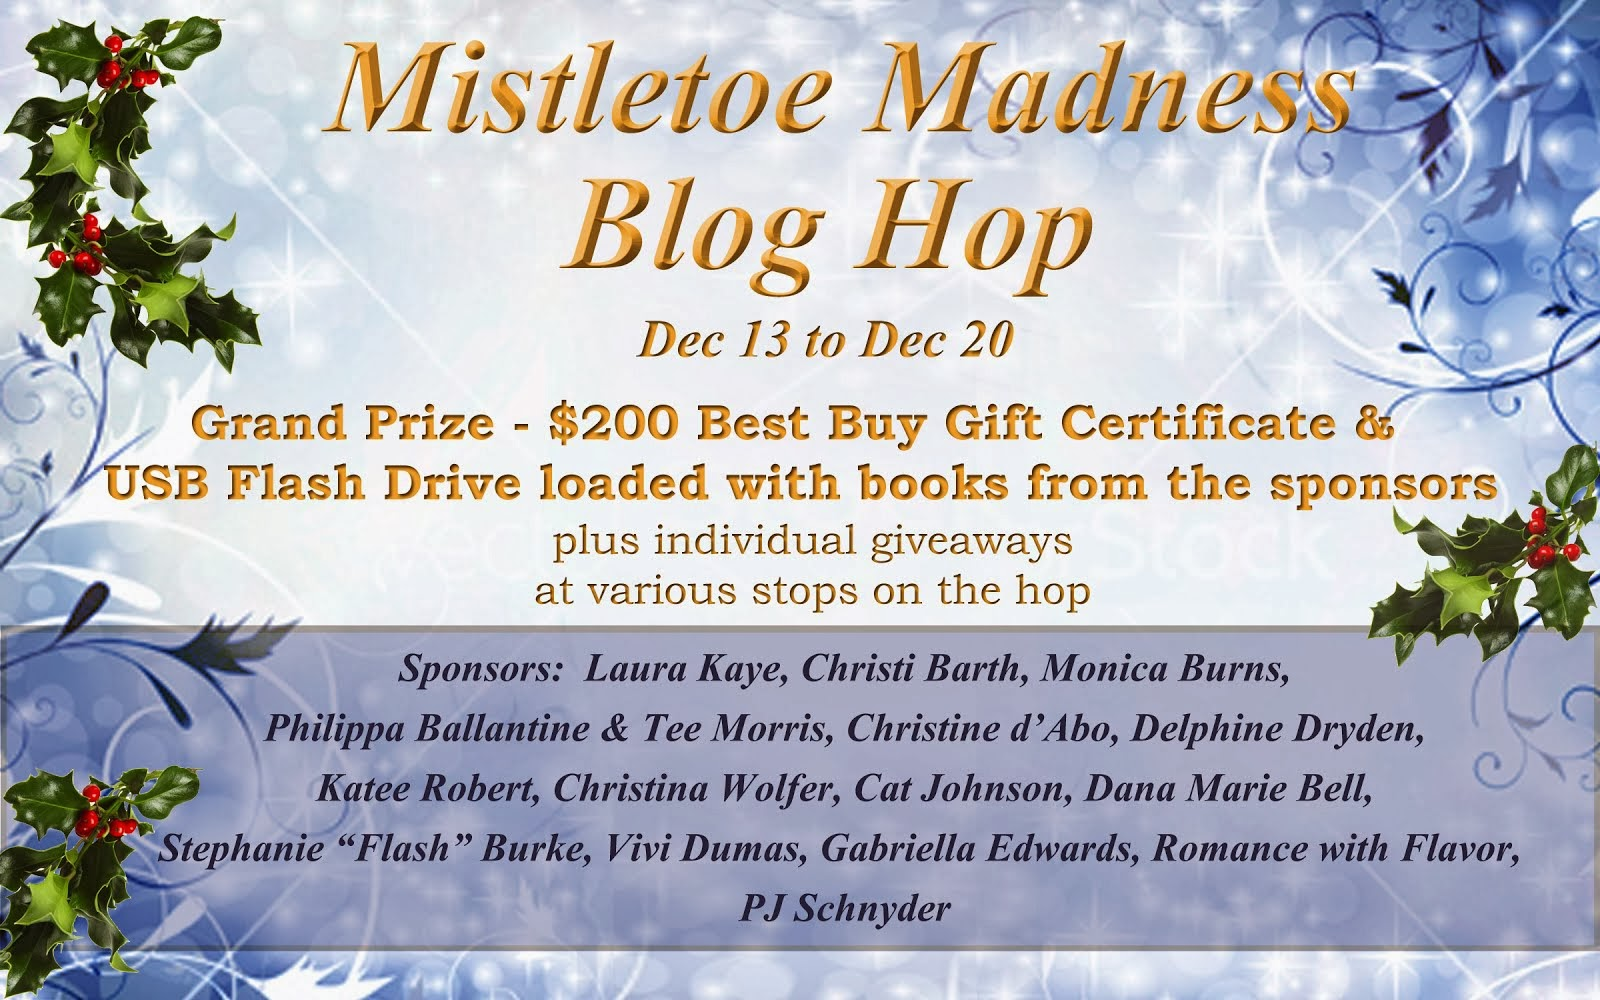 Mistletoe Madness Blog Hop 2013